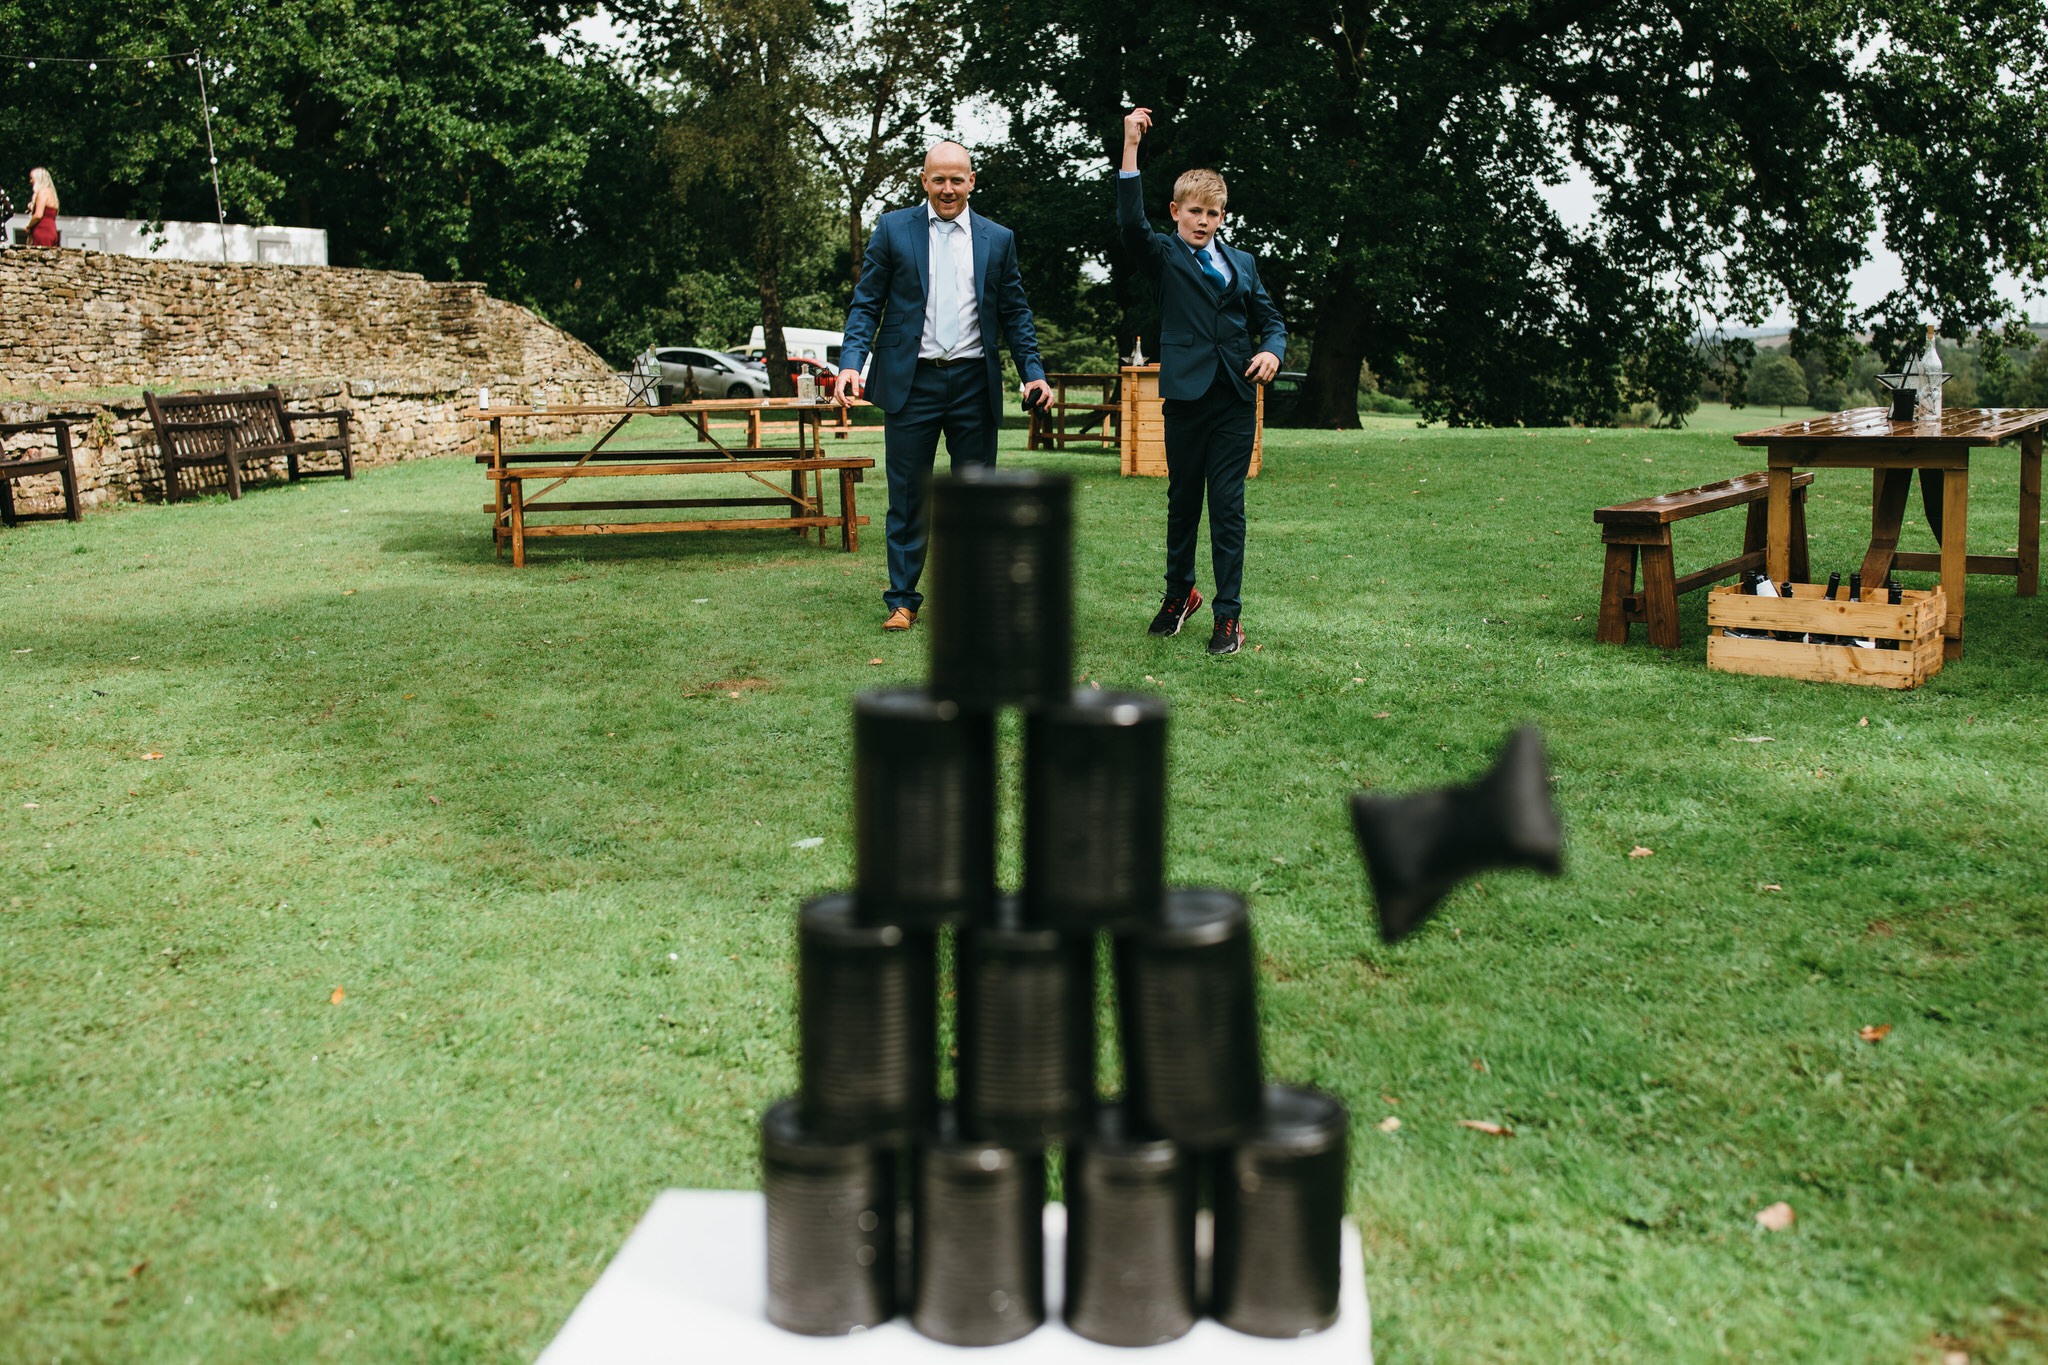 Games at wedding